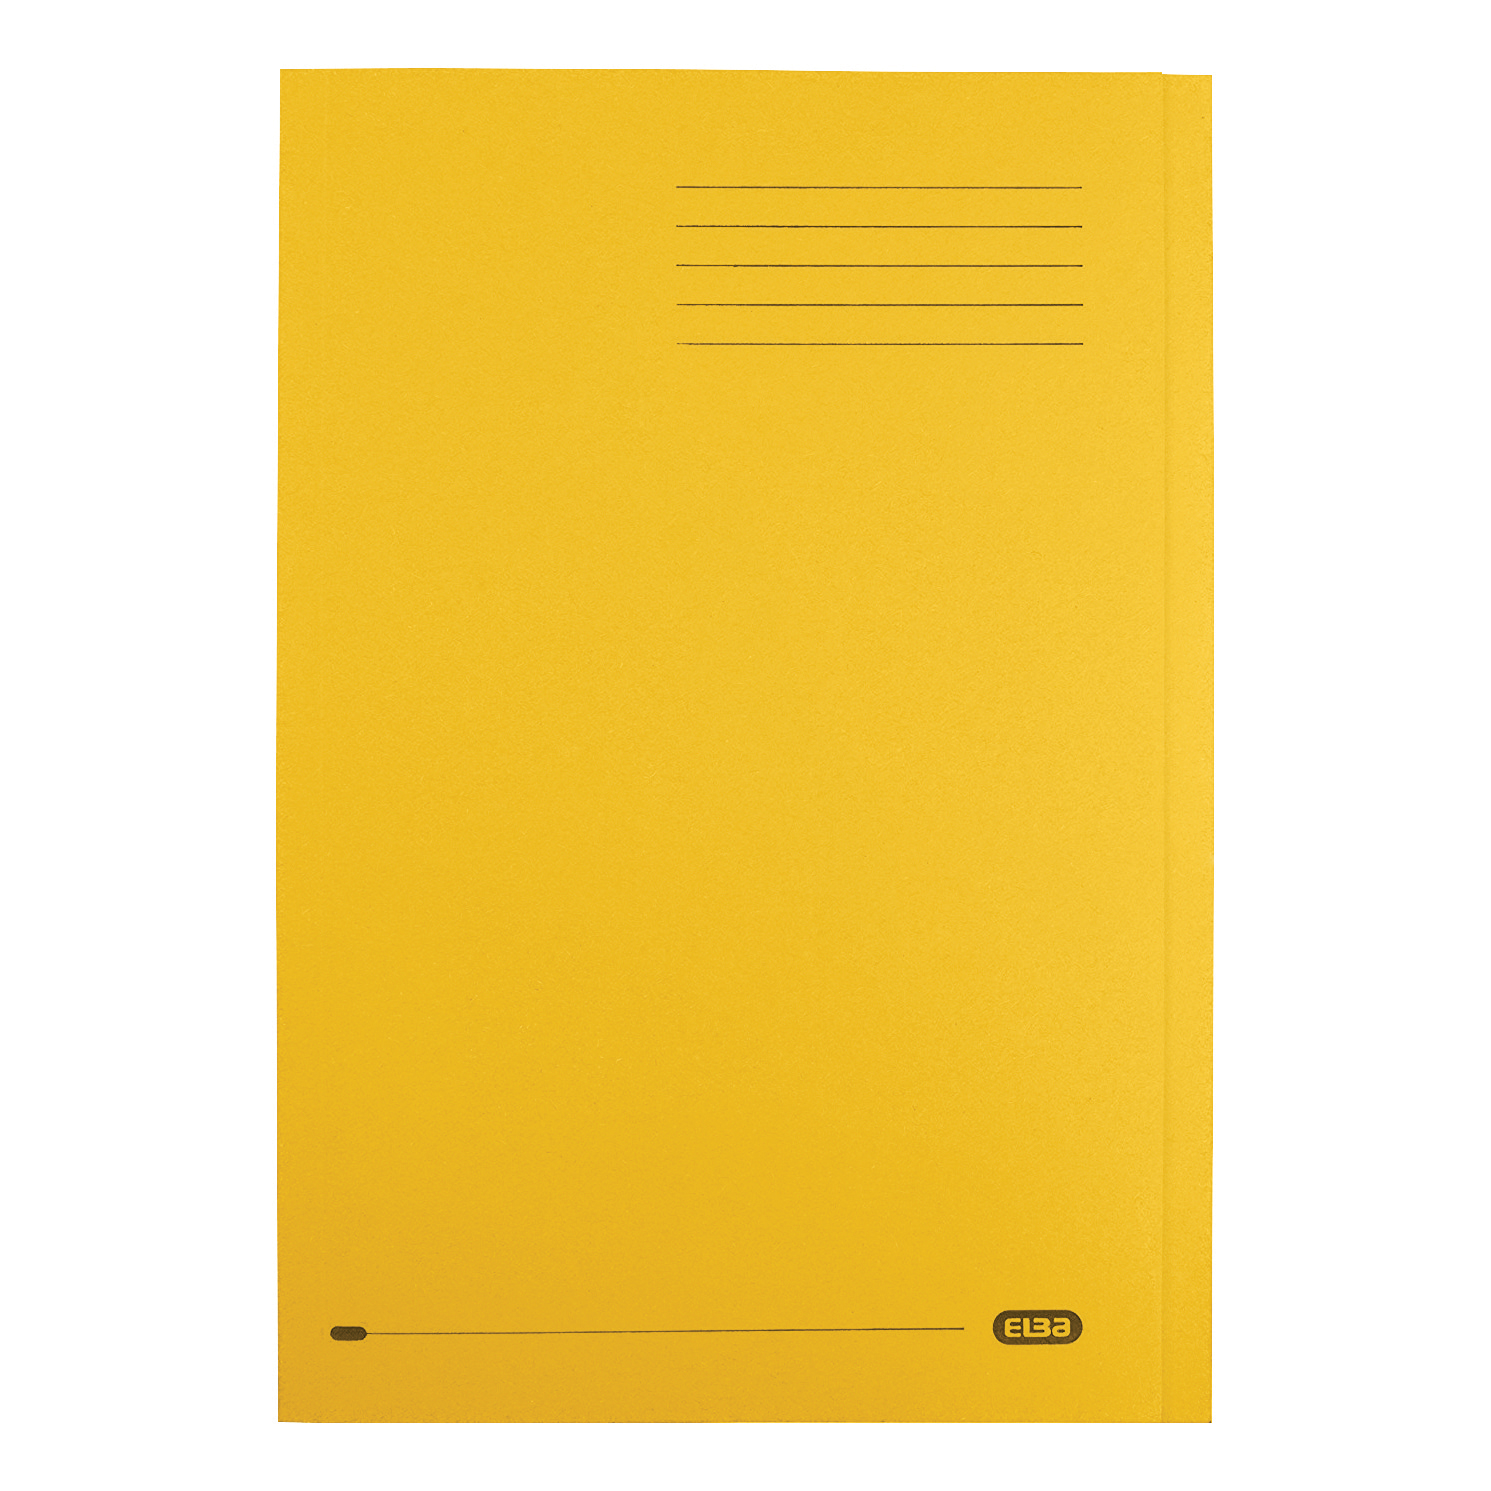 Elba StrongLine Square Cut Folder Heavyweight 320gsm 32mm Foolscap Yellow Ref 100090023 [Pack 50]